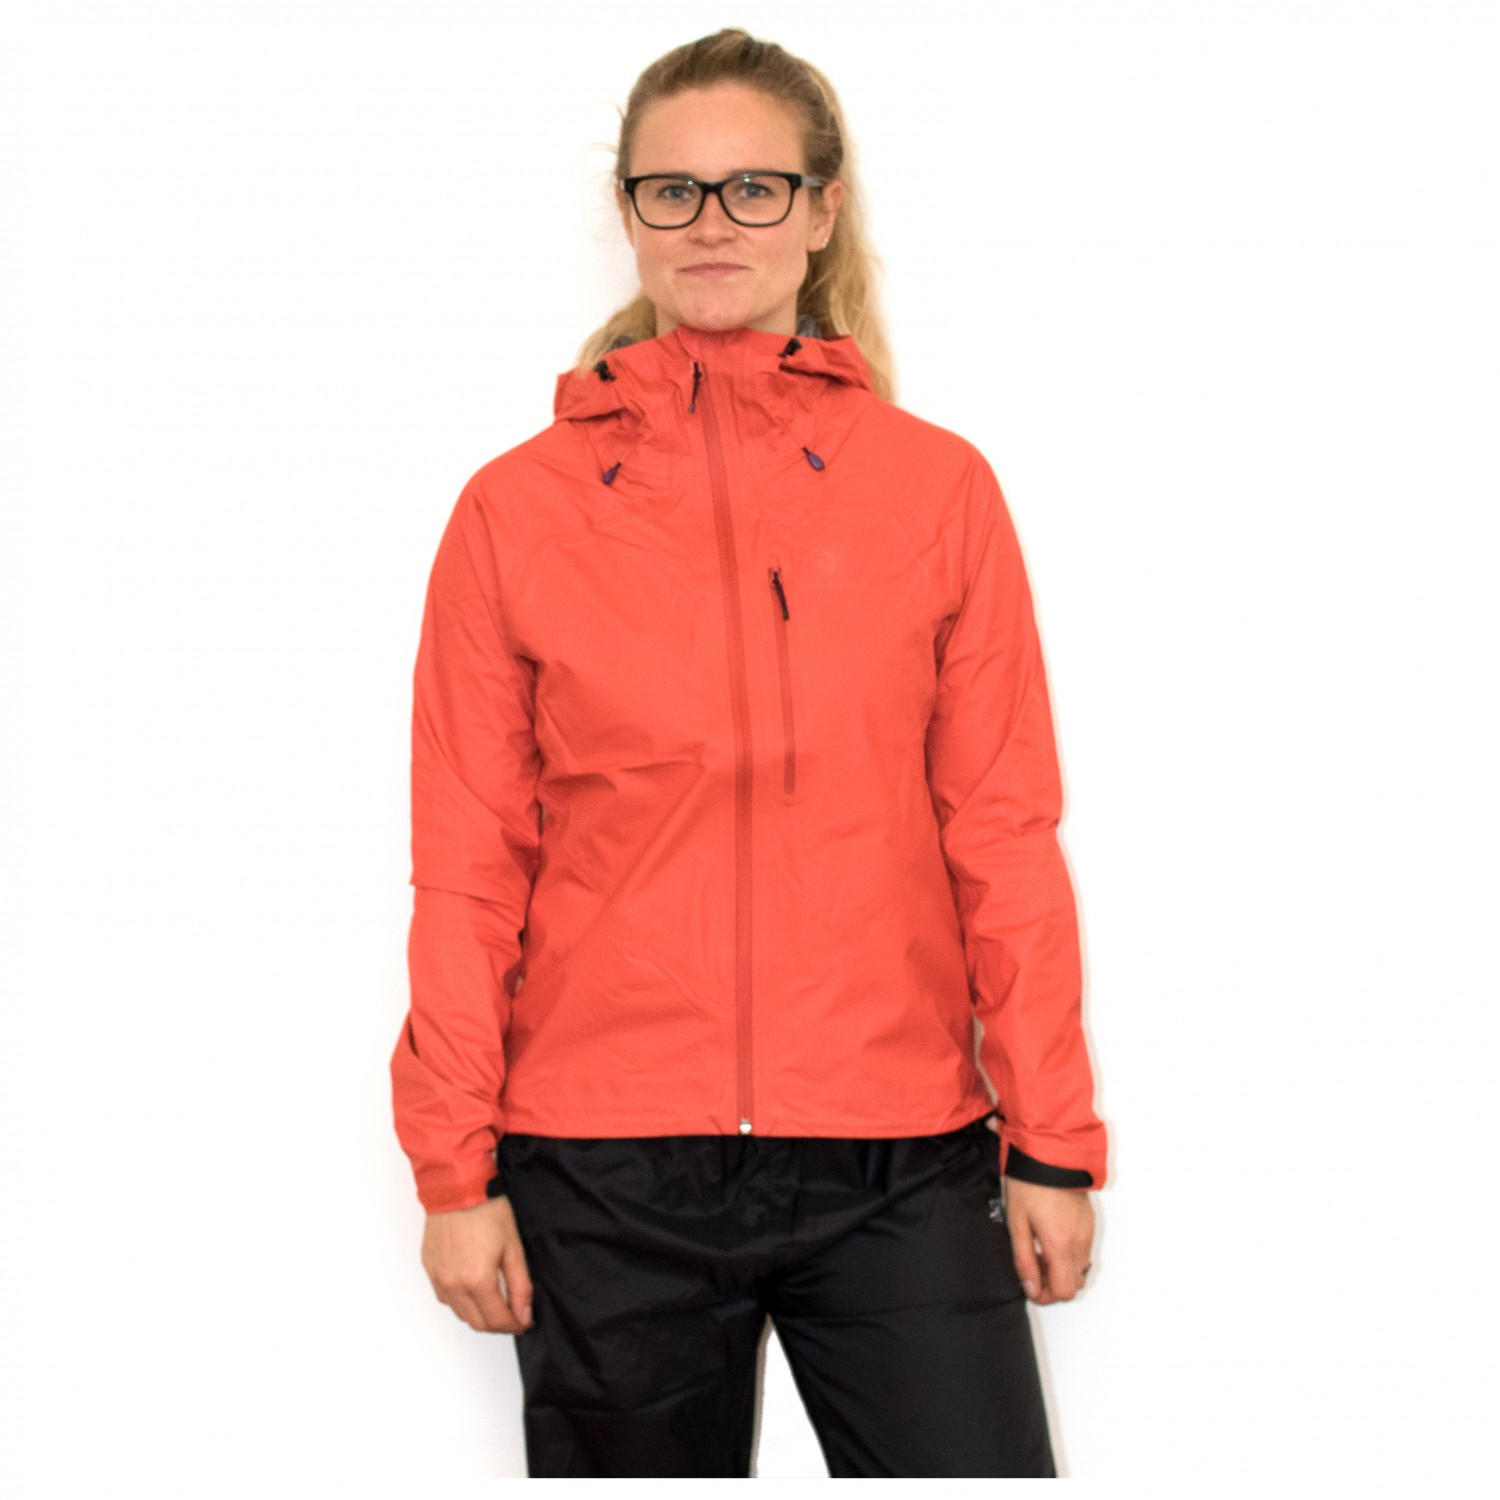 Black Yak Dzo Jacket Rain Jacket Women S Free Uk